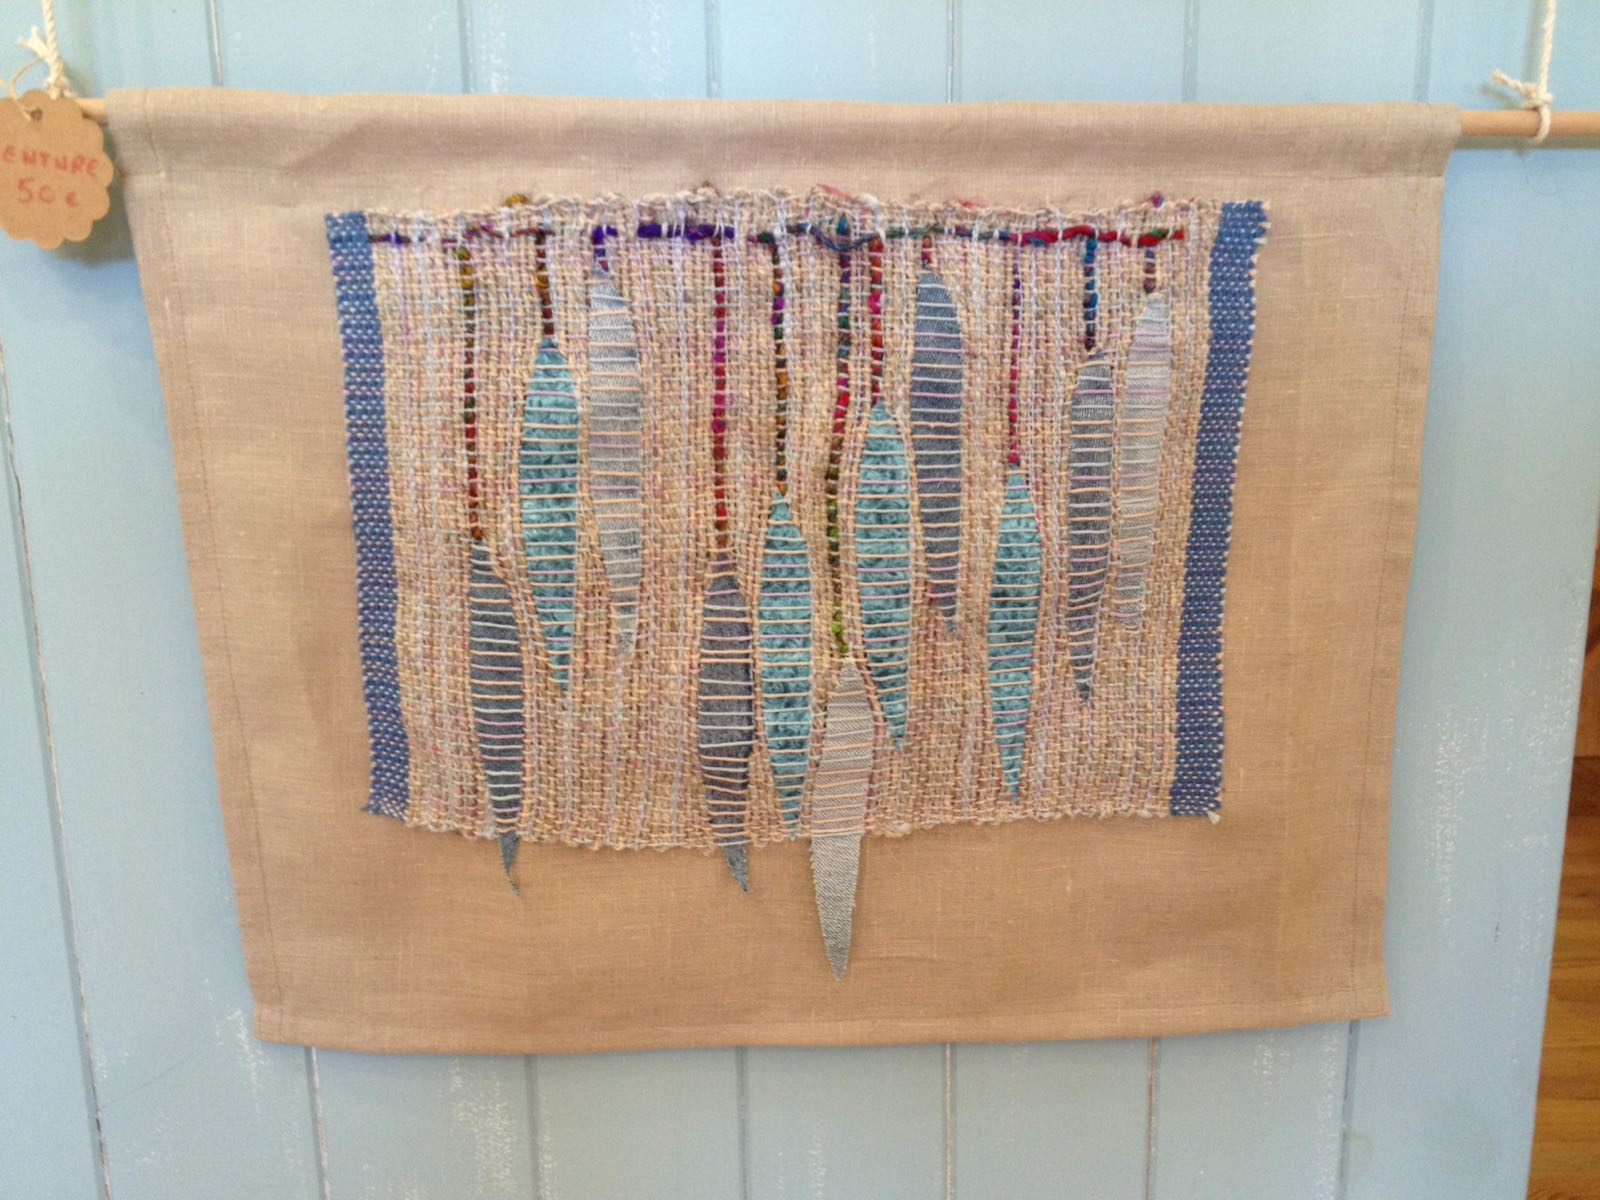 Handwoven Wall Hanging with Willow Leaf Motif